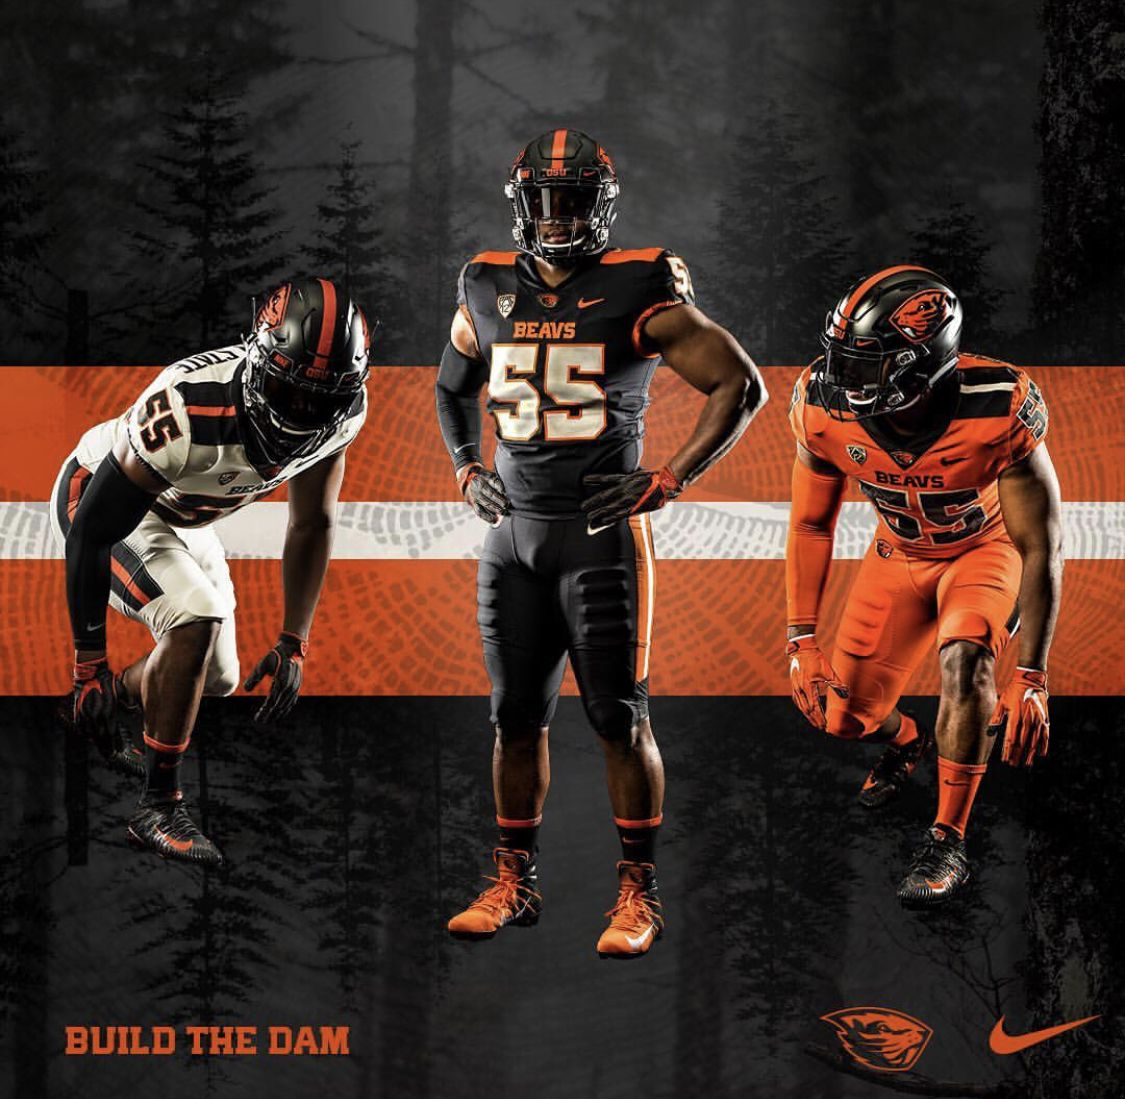 New Uniforms for Oregon State Football uniforms